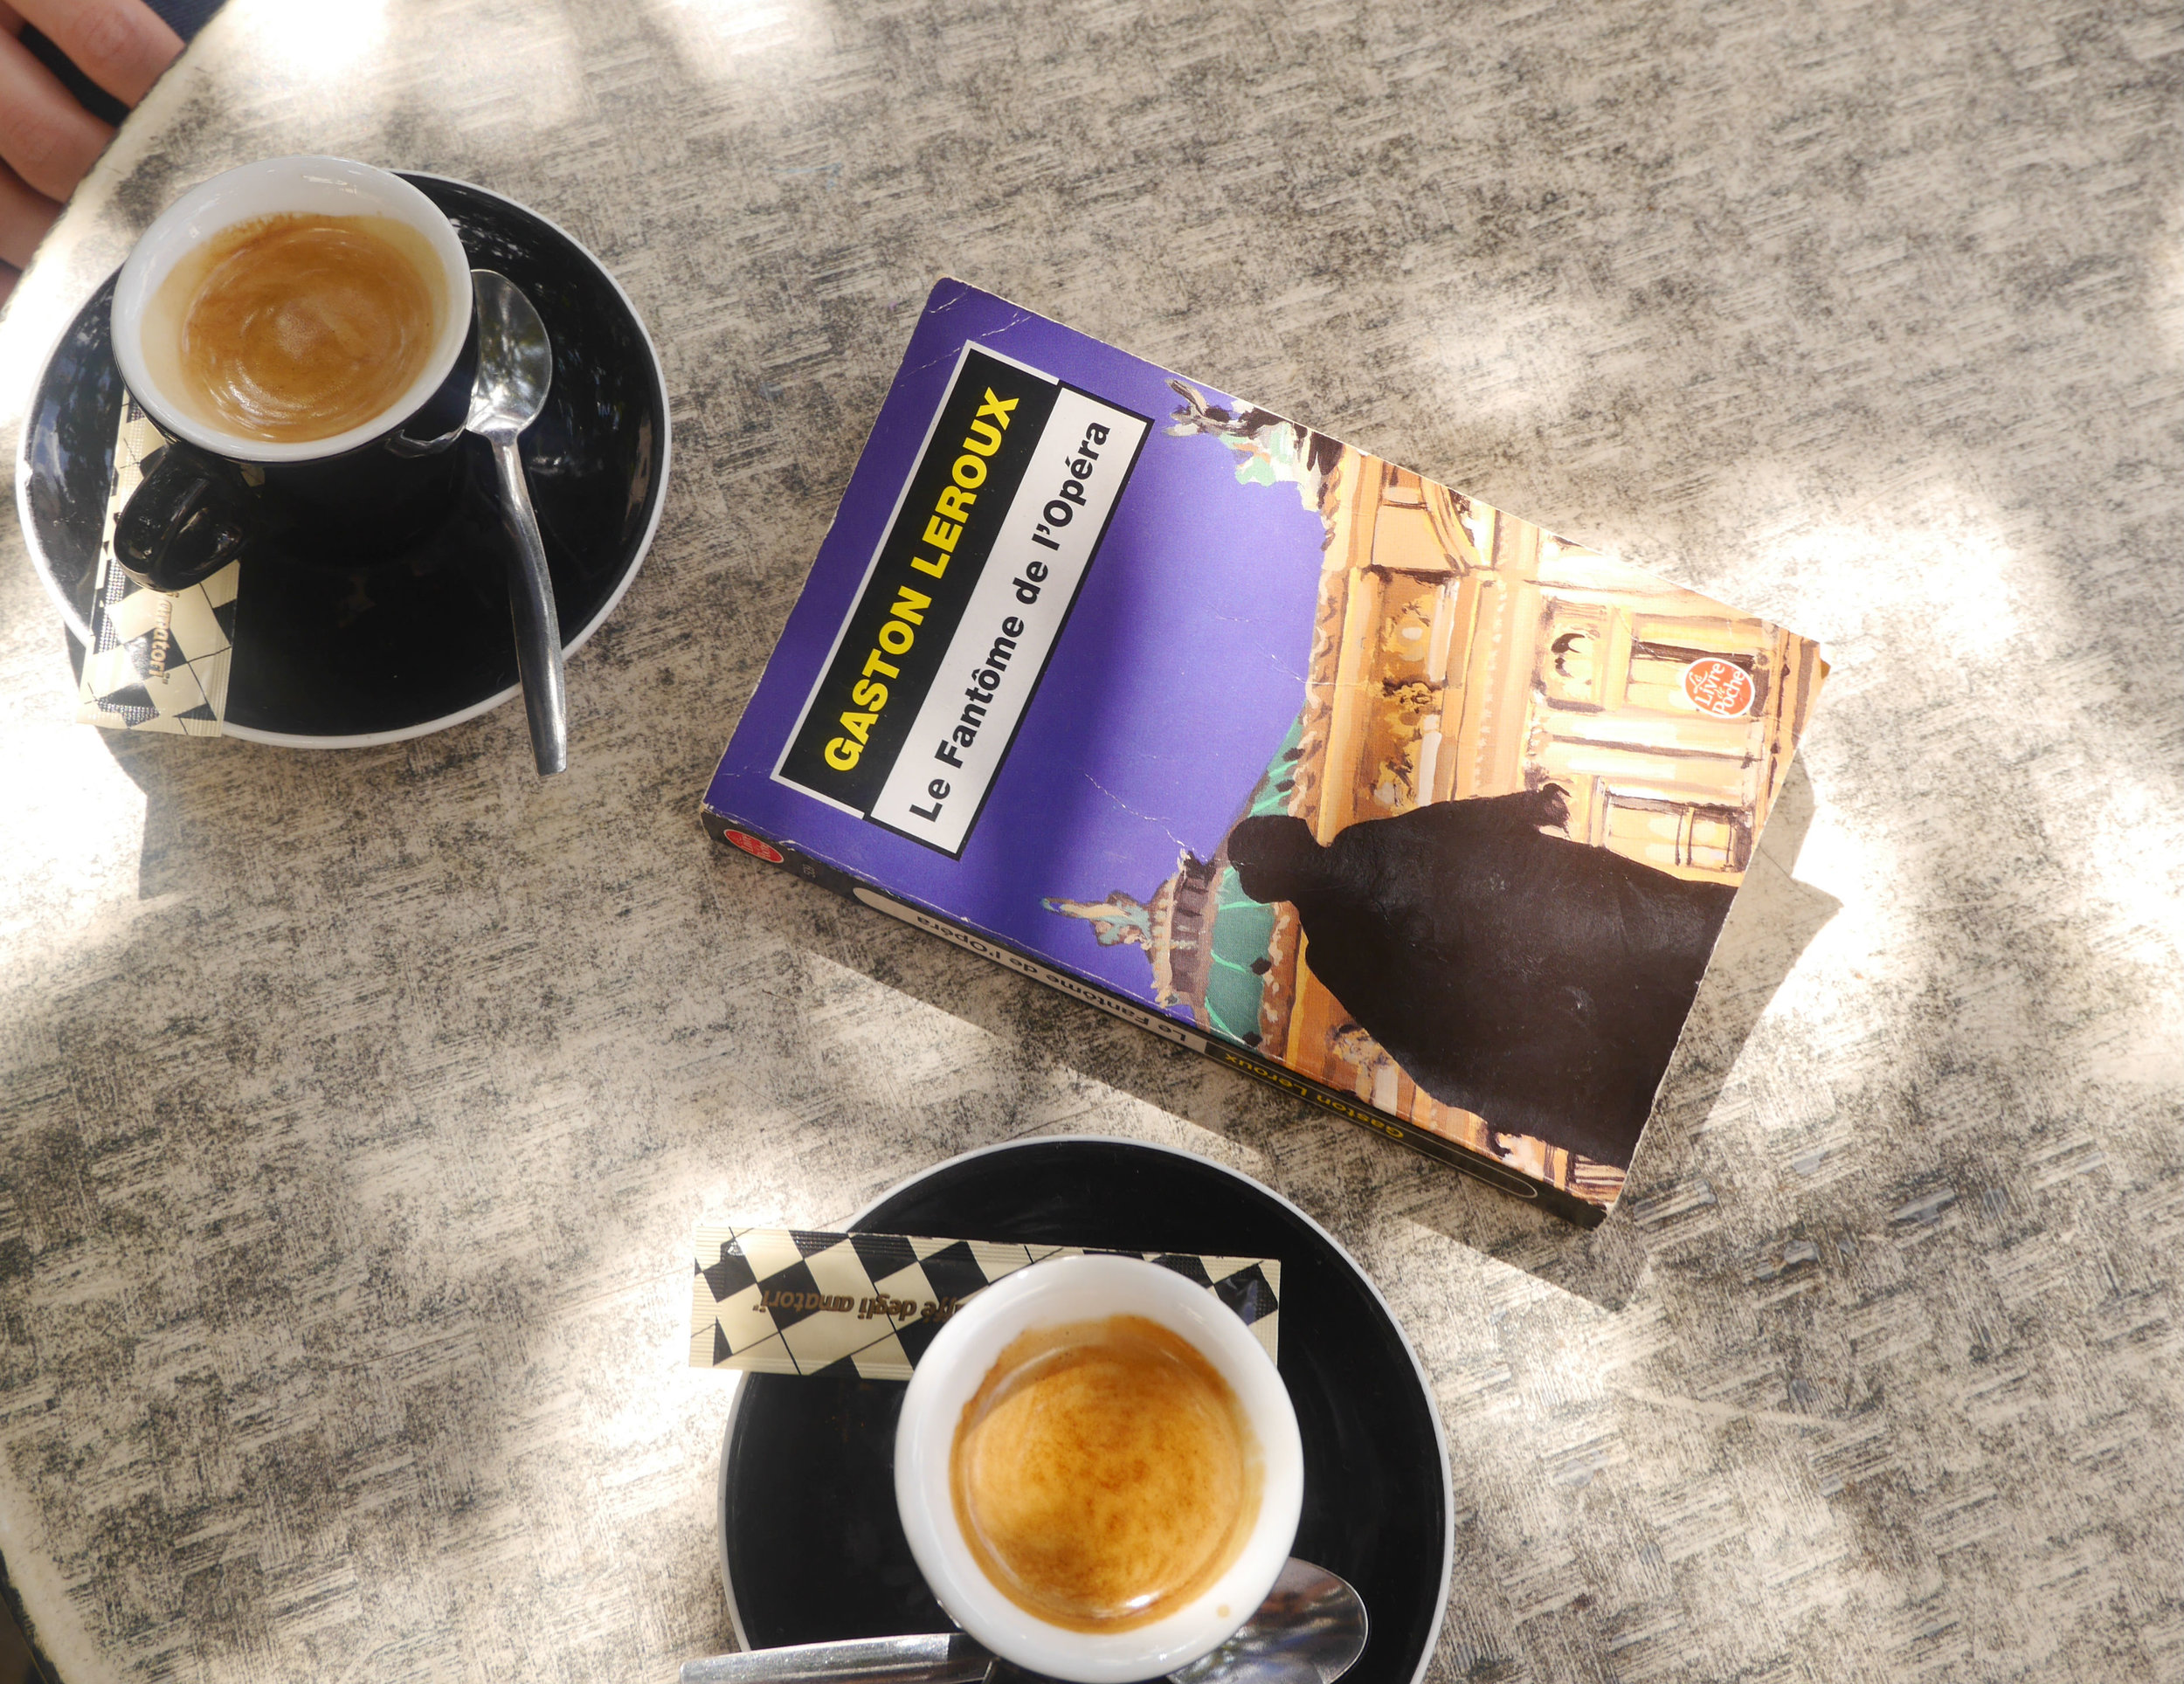 Coffee and a book found in the street, somewhere near Pere Lachasise.